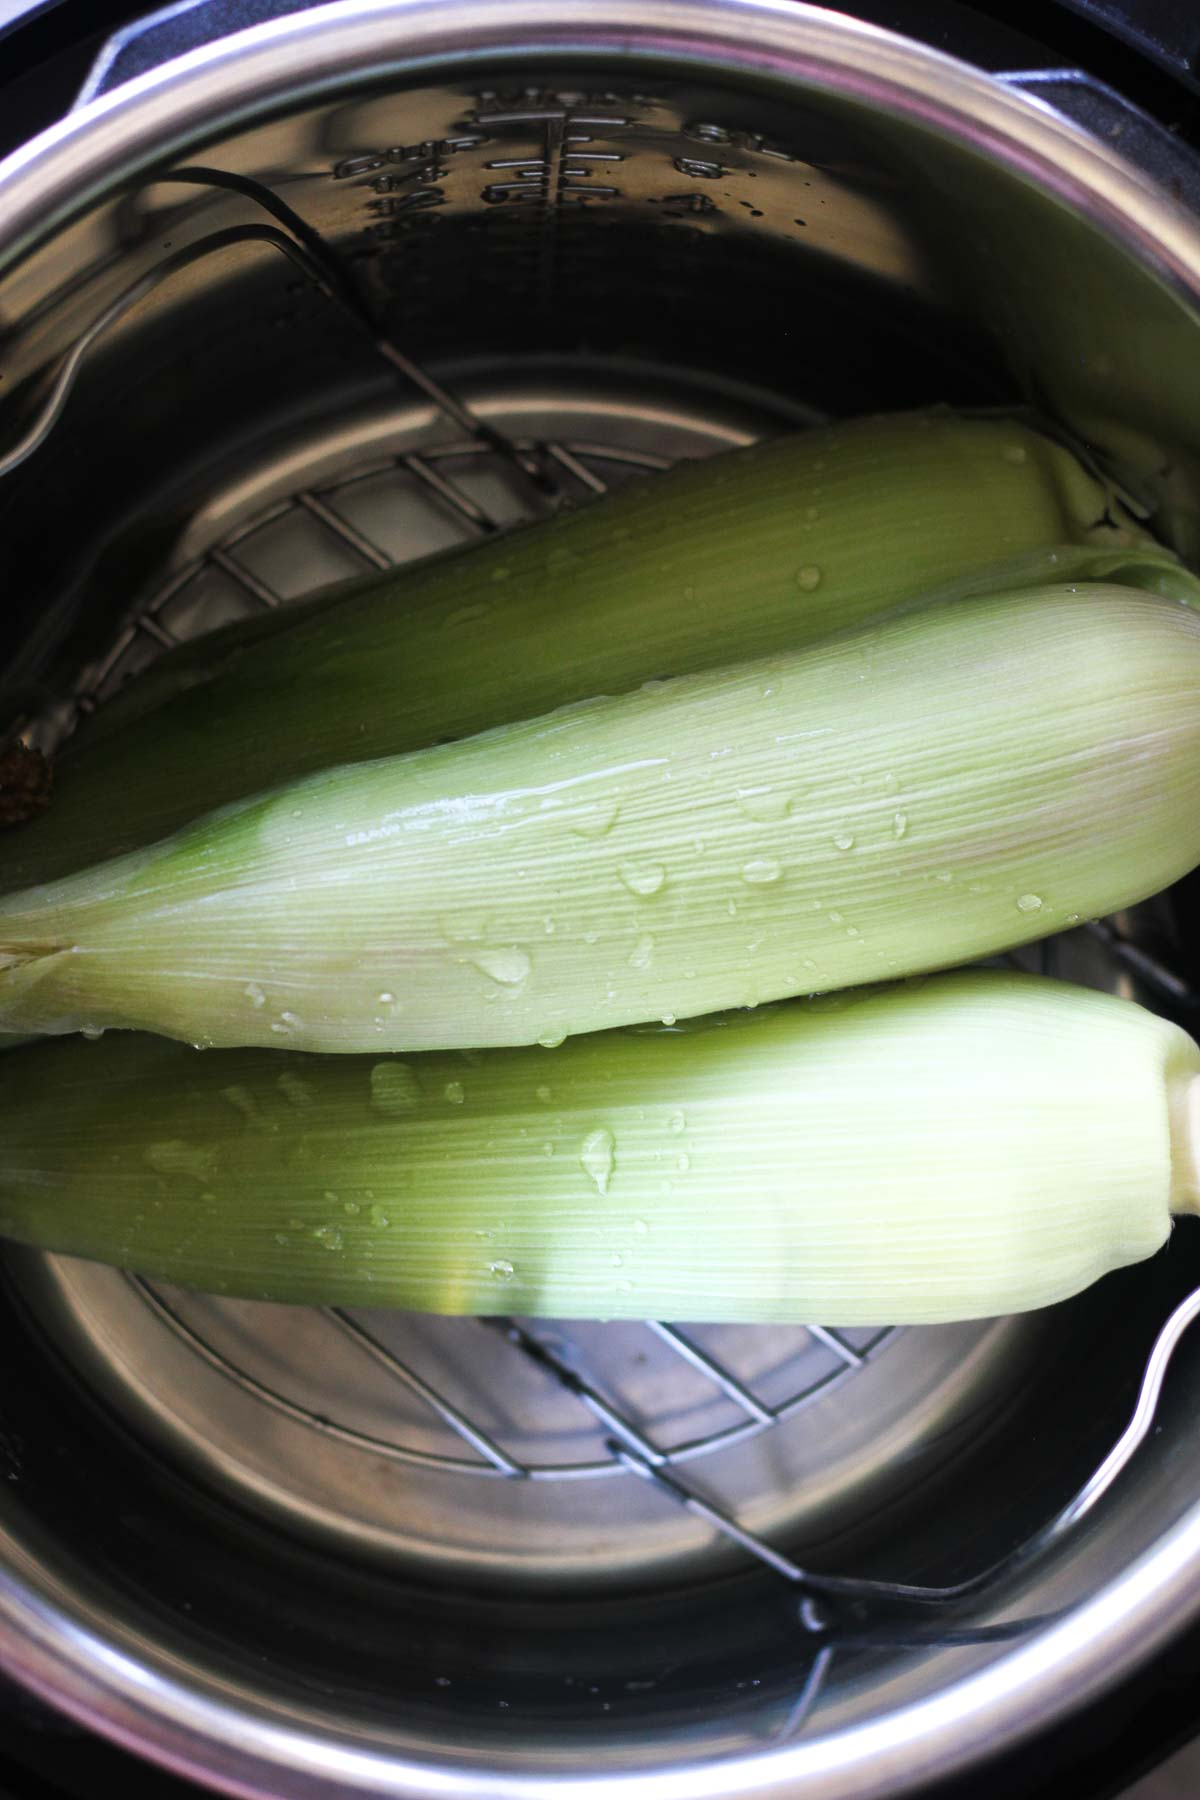 corn on the cob in husk in the instant pot inner pot with trivet